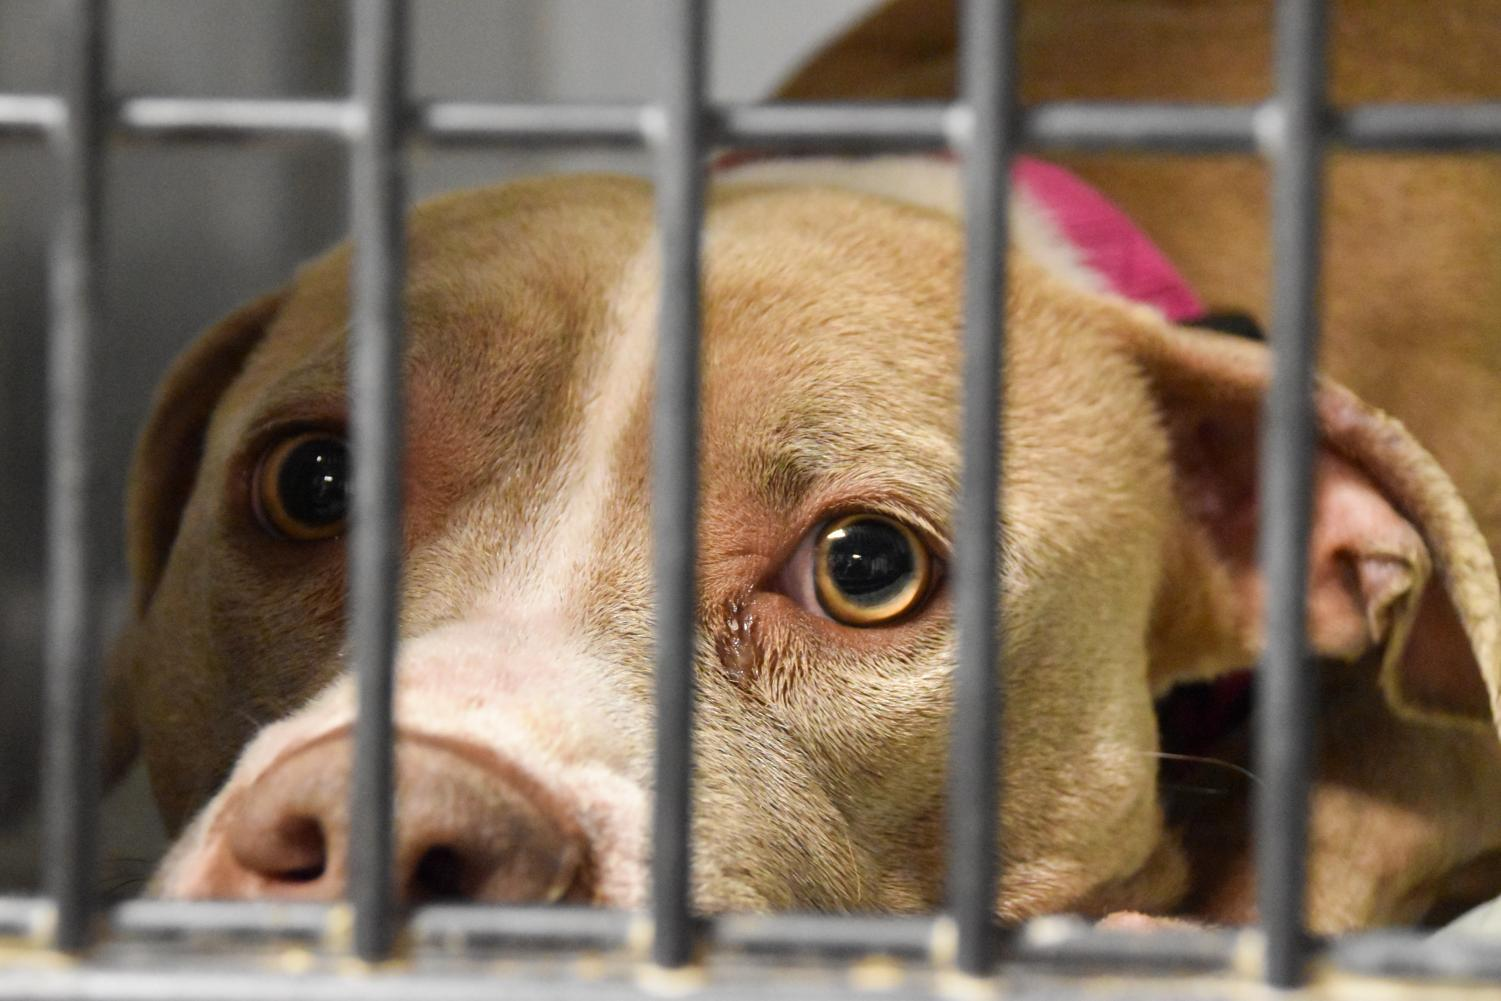 """Natasha, a American Pit Bull Terrier mix, sits forlornly in her kennel at Kansas City Pet Project on Dec. 9. Natasha is marked as a """"shy/scared"""" dog, but it is unknown what she's afraid of. photo by Claire Smith"""